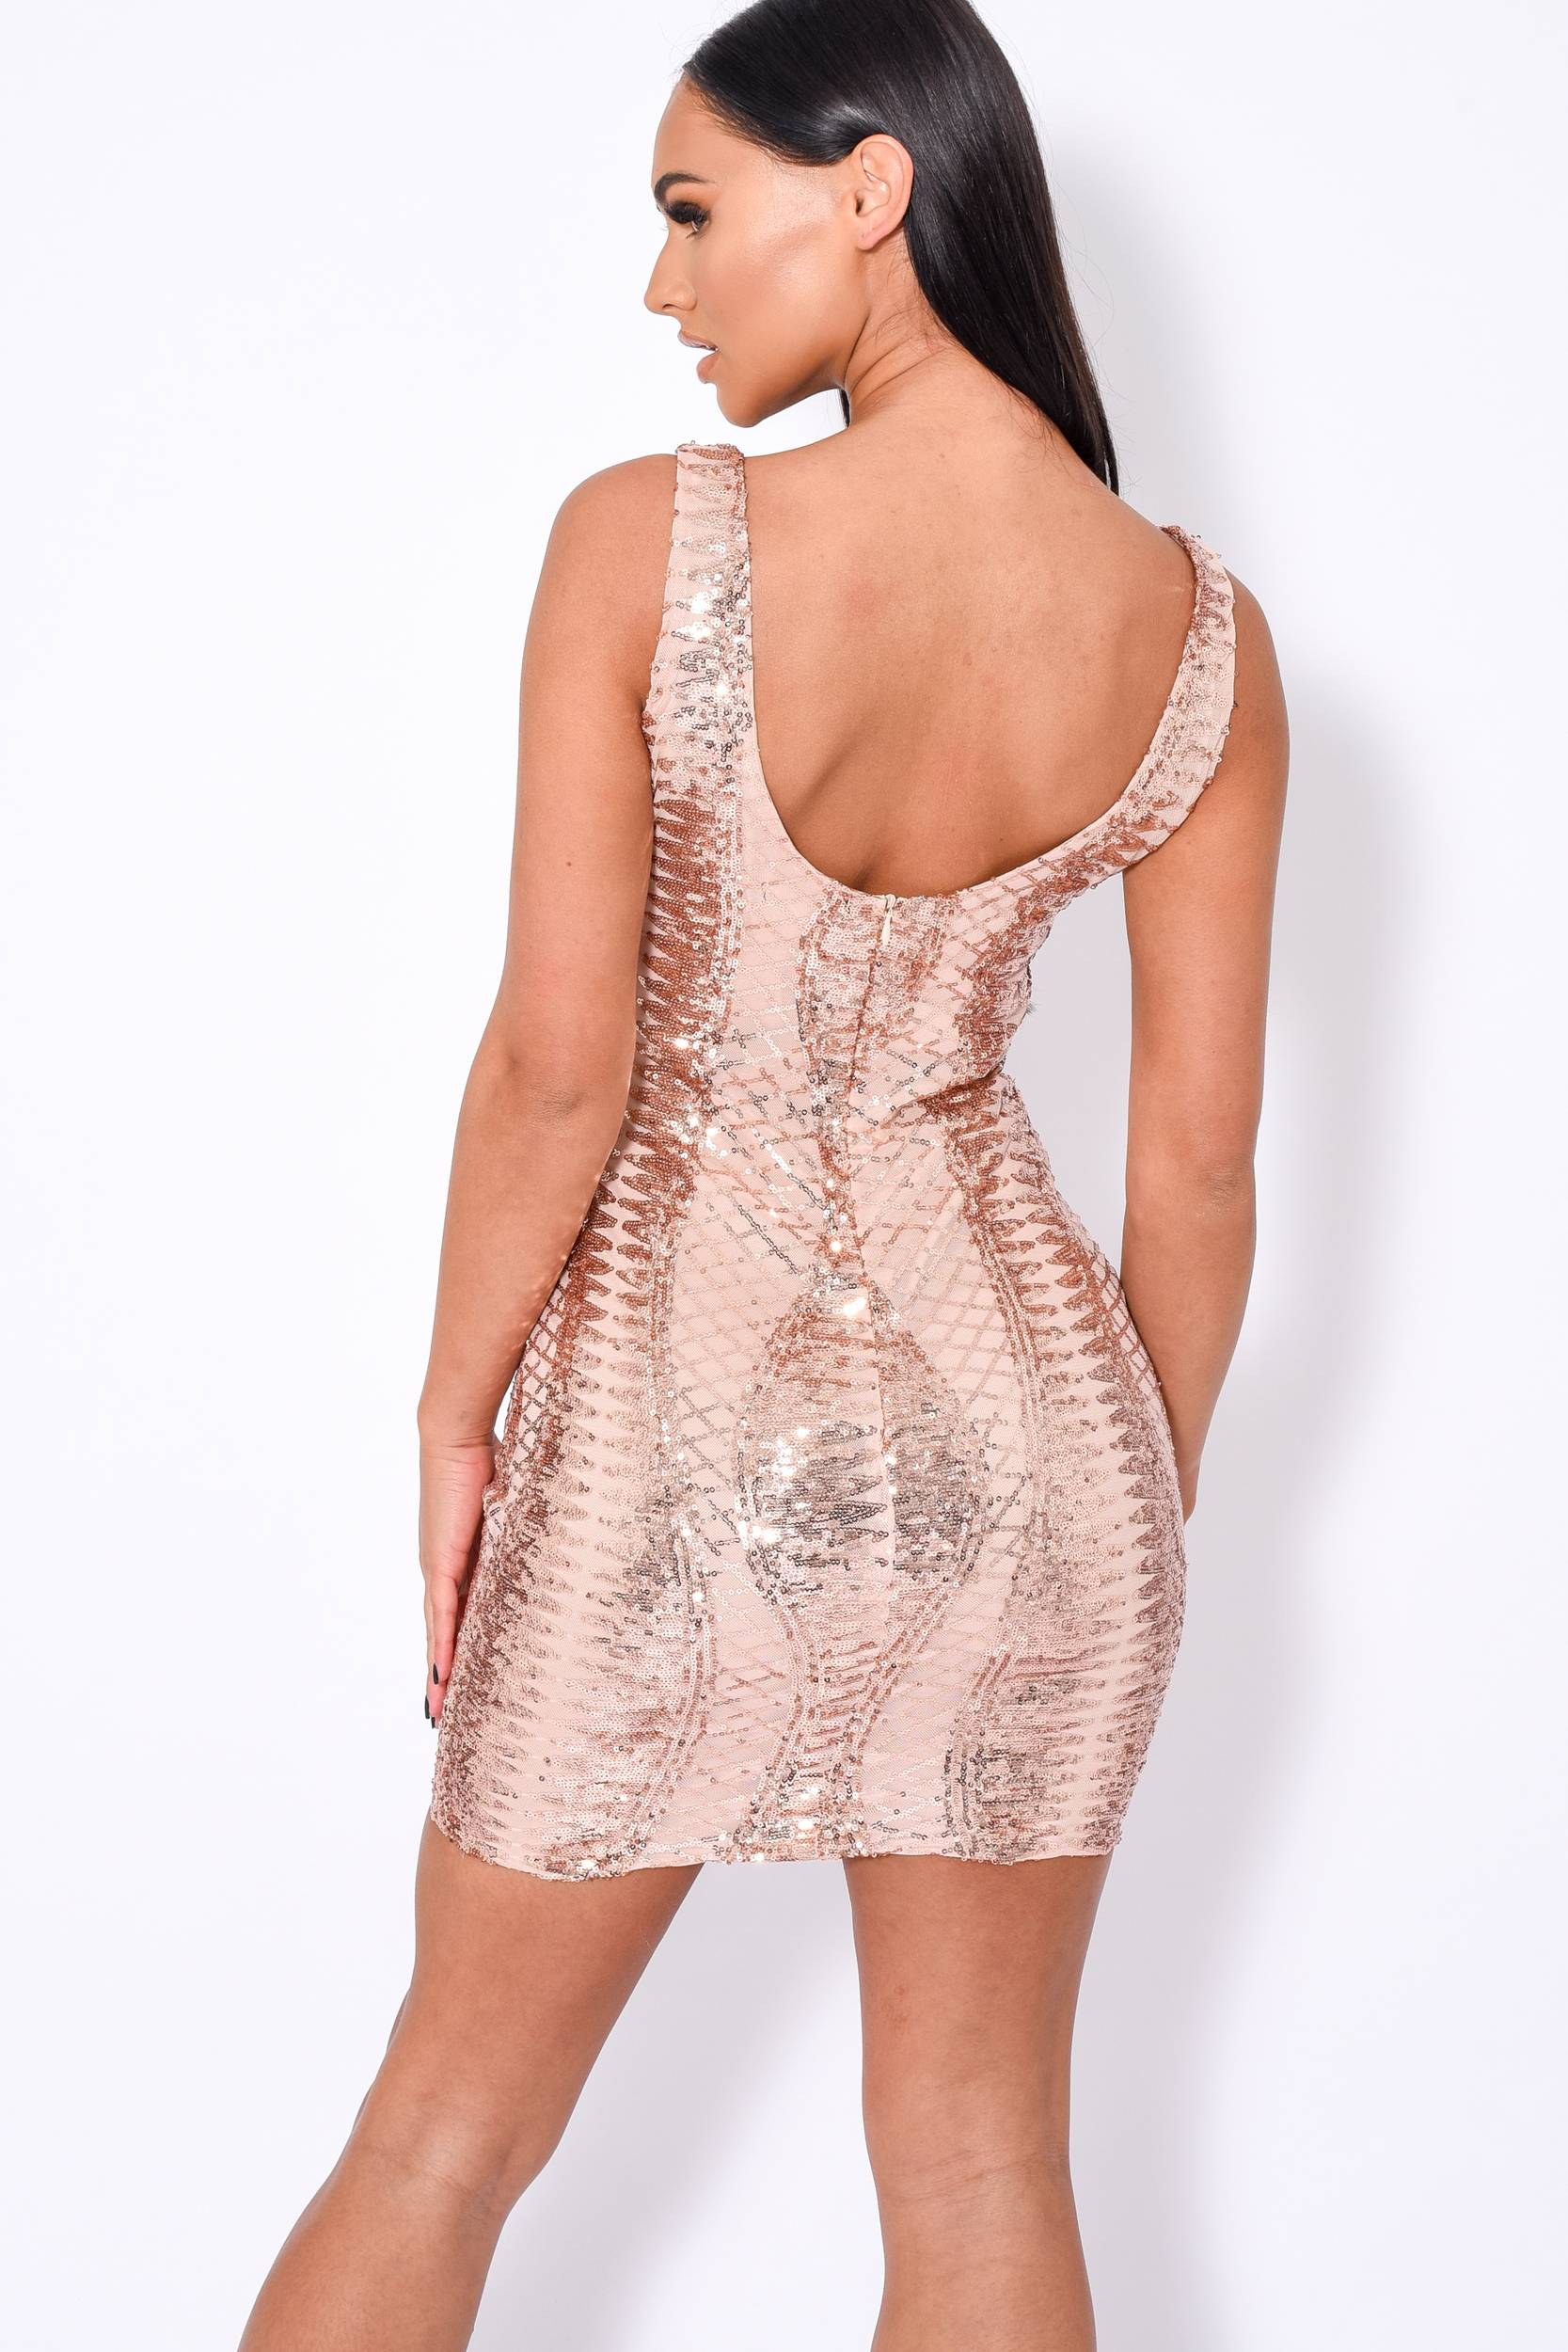 Till Midnight Rose Gold Cut Out Sequin Bandage Cage Bodycon Dress Nazz Collection